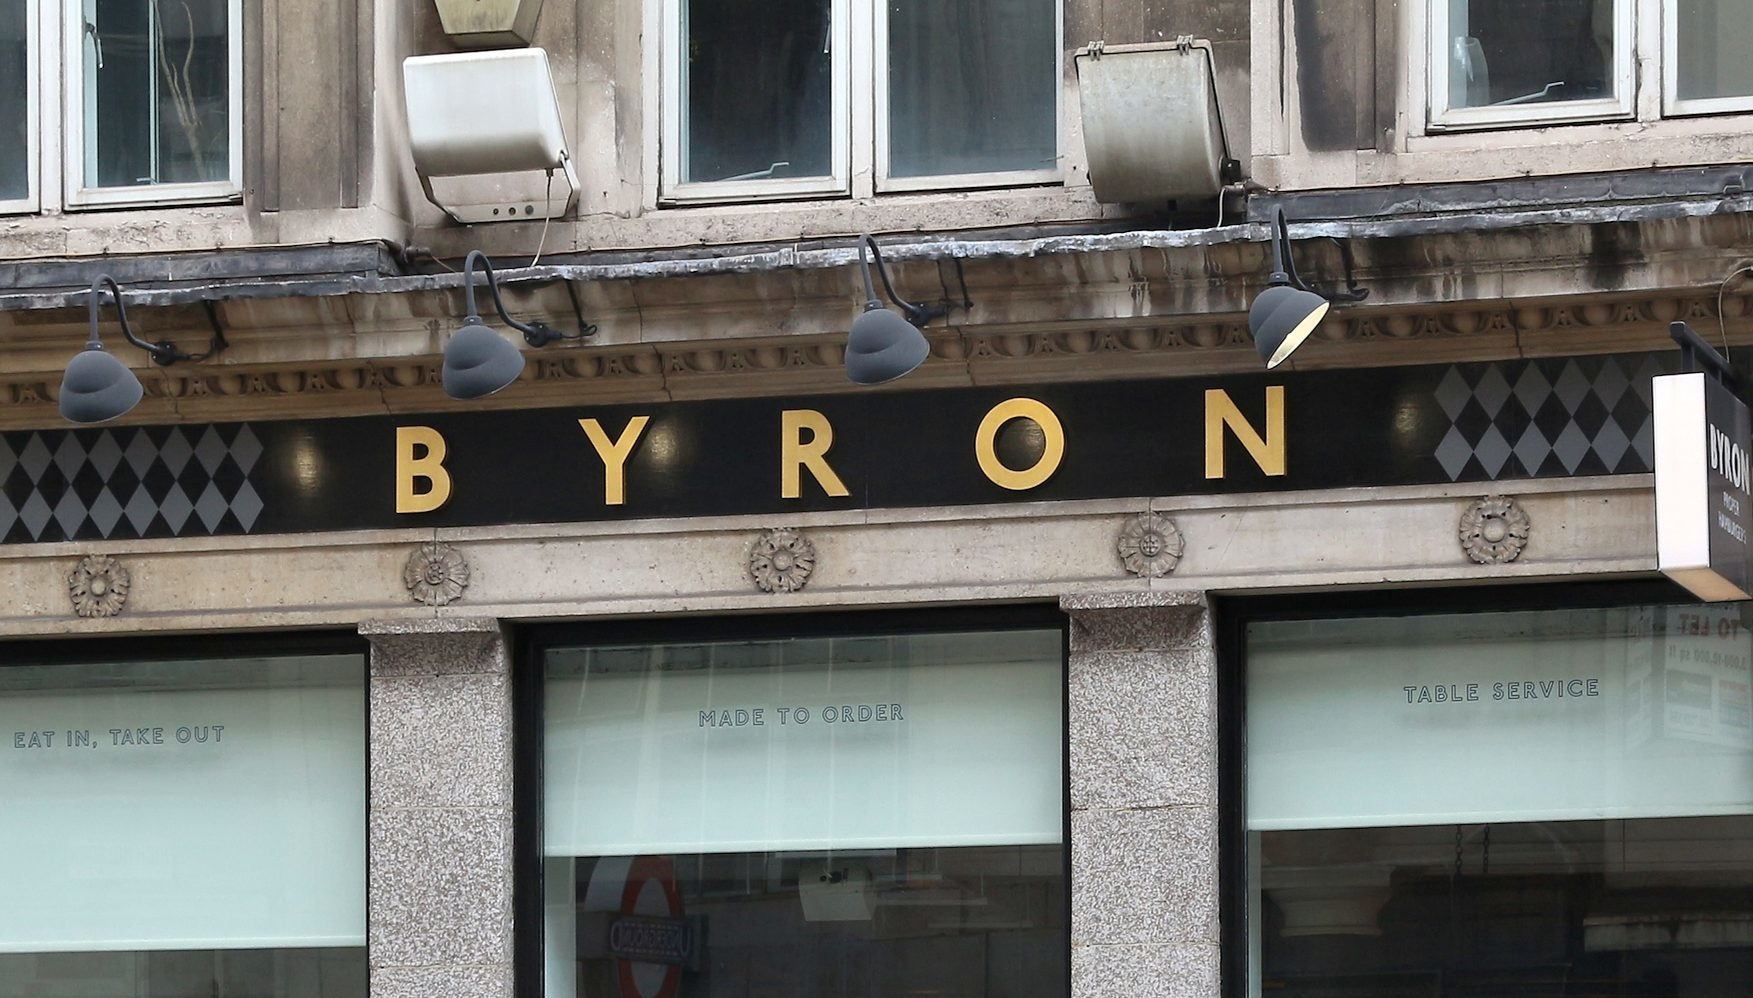 Byron Burger in Glasgow has closed (Getty Images/IStockphoto)